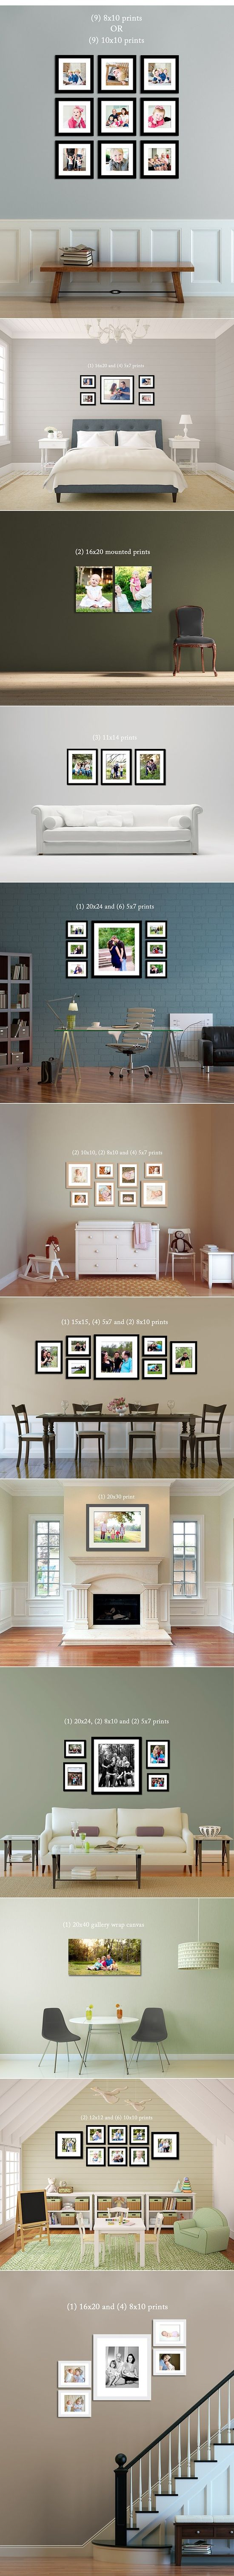 Picture hanging ideas. Can easily combine this into your space and visualize you